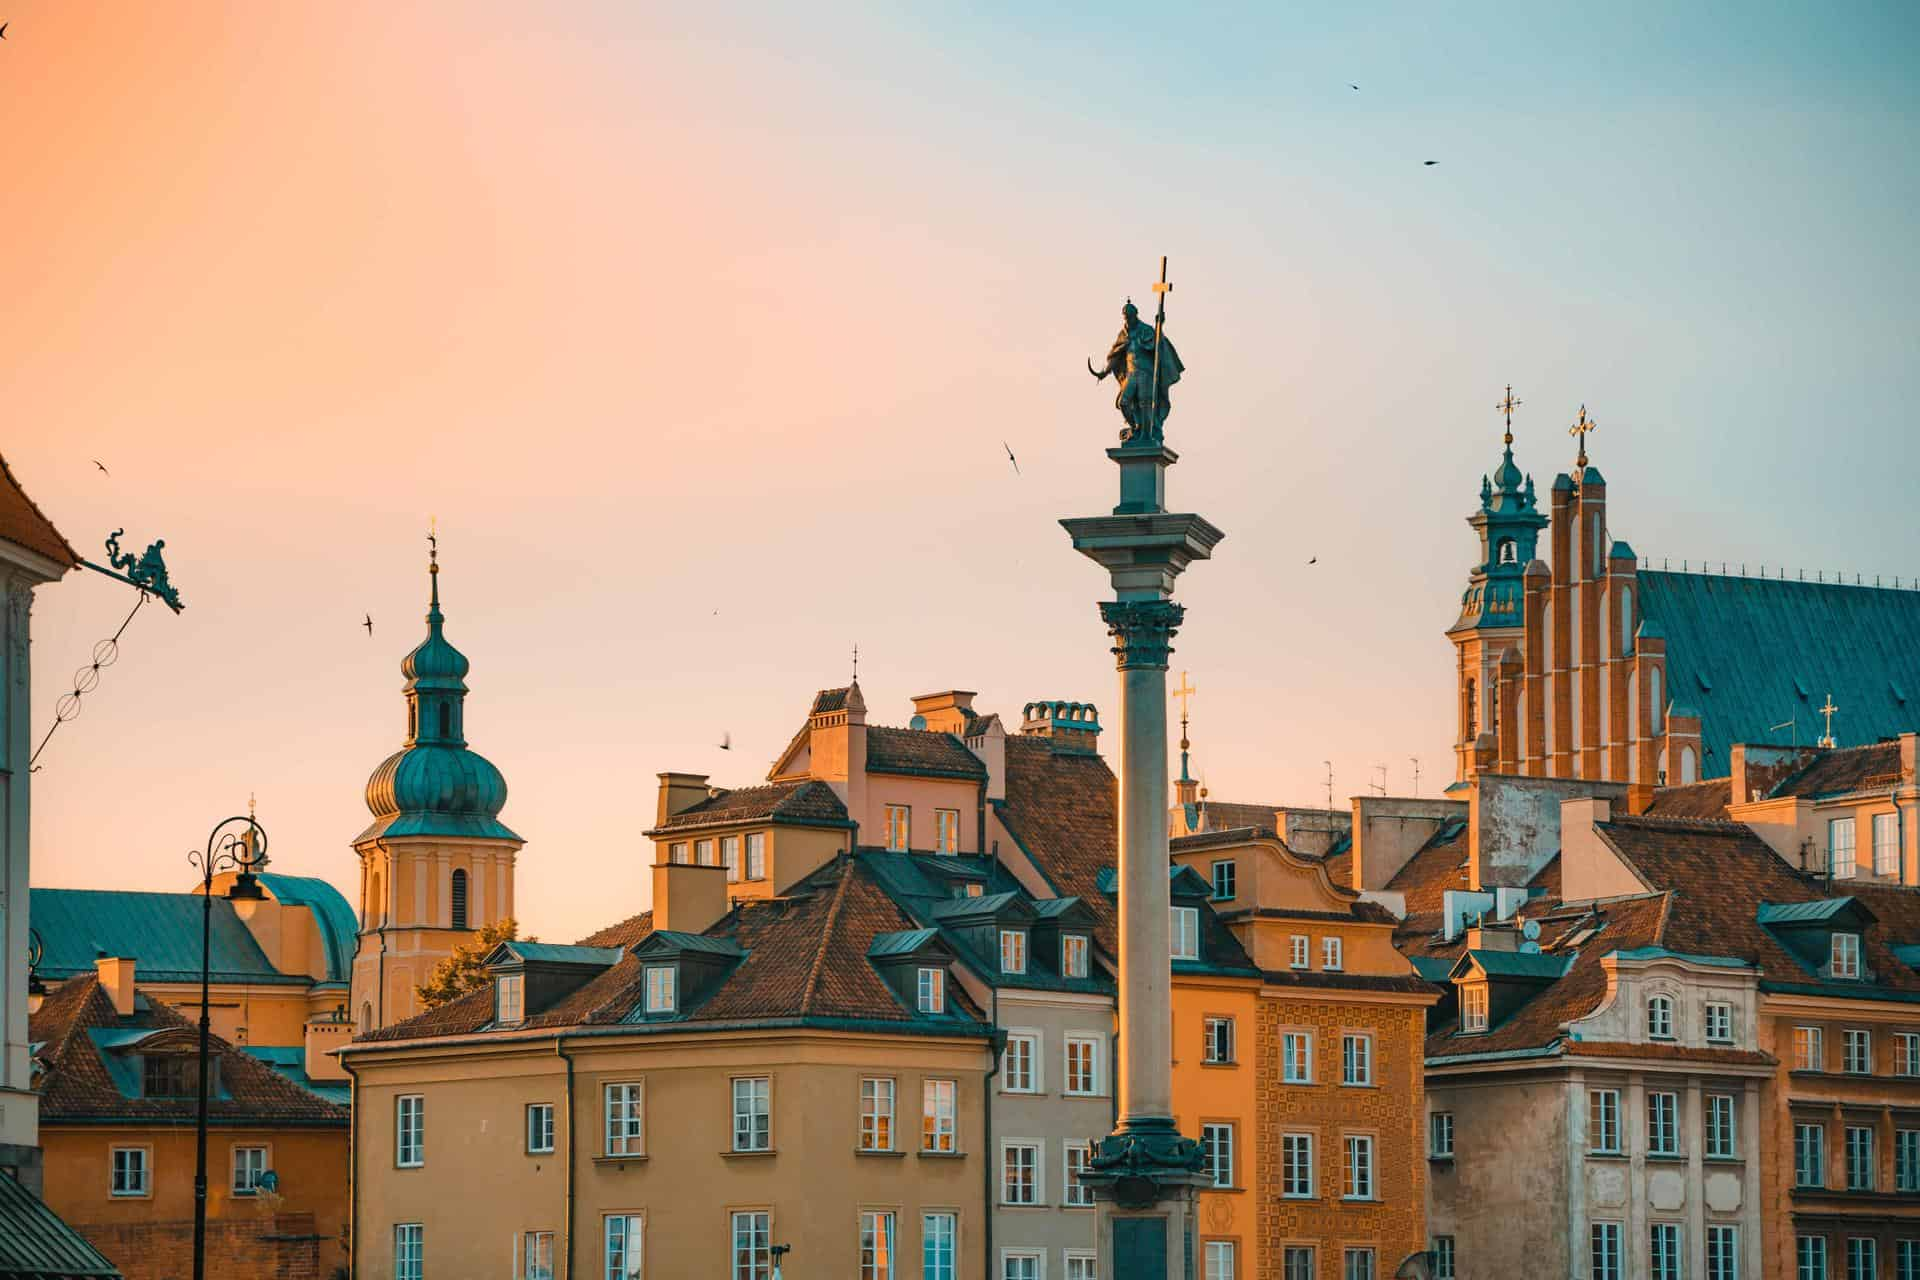 A statue on a column and tops of buildings